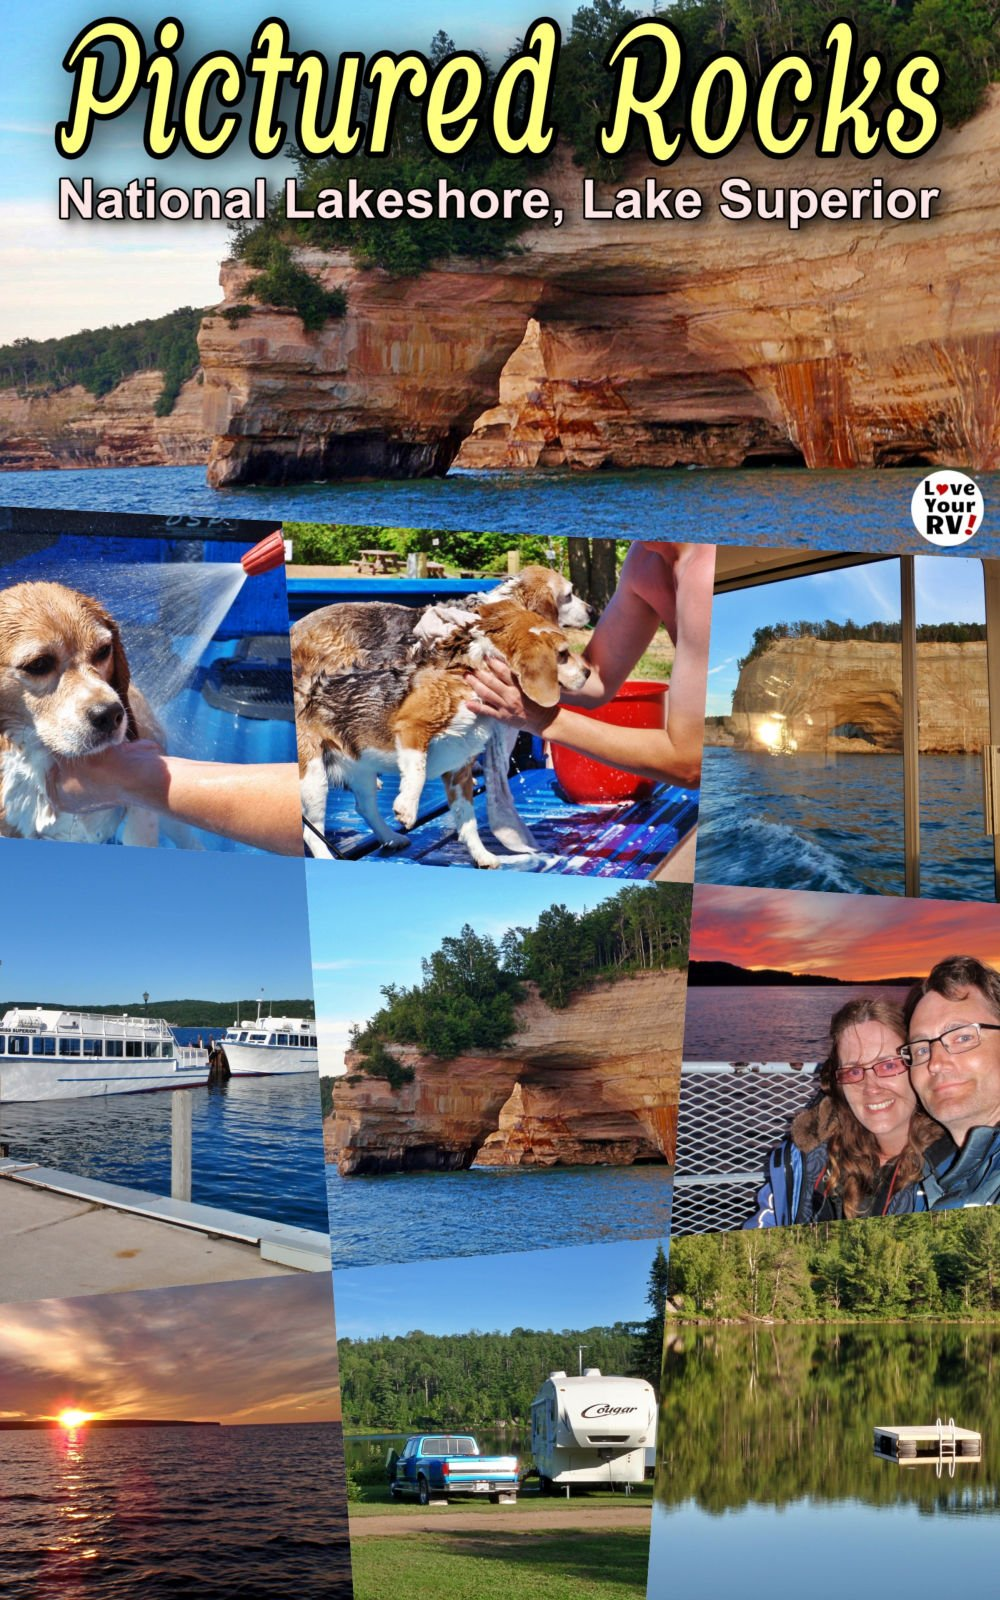 Pictured Rocks National Lakeshore - Throwback Video (July 2011)